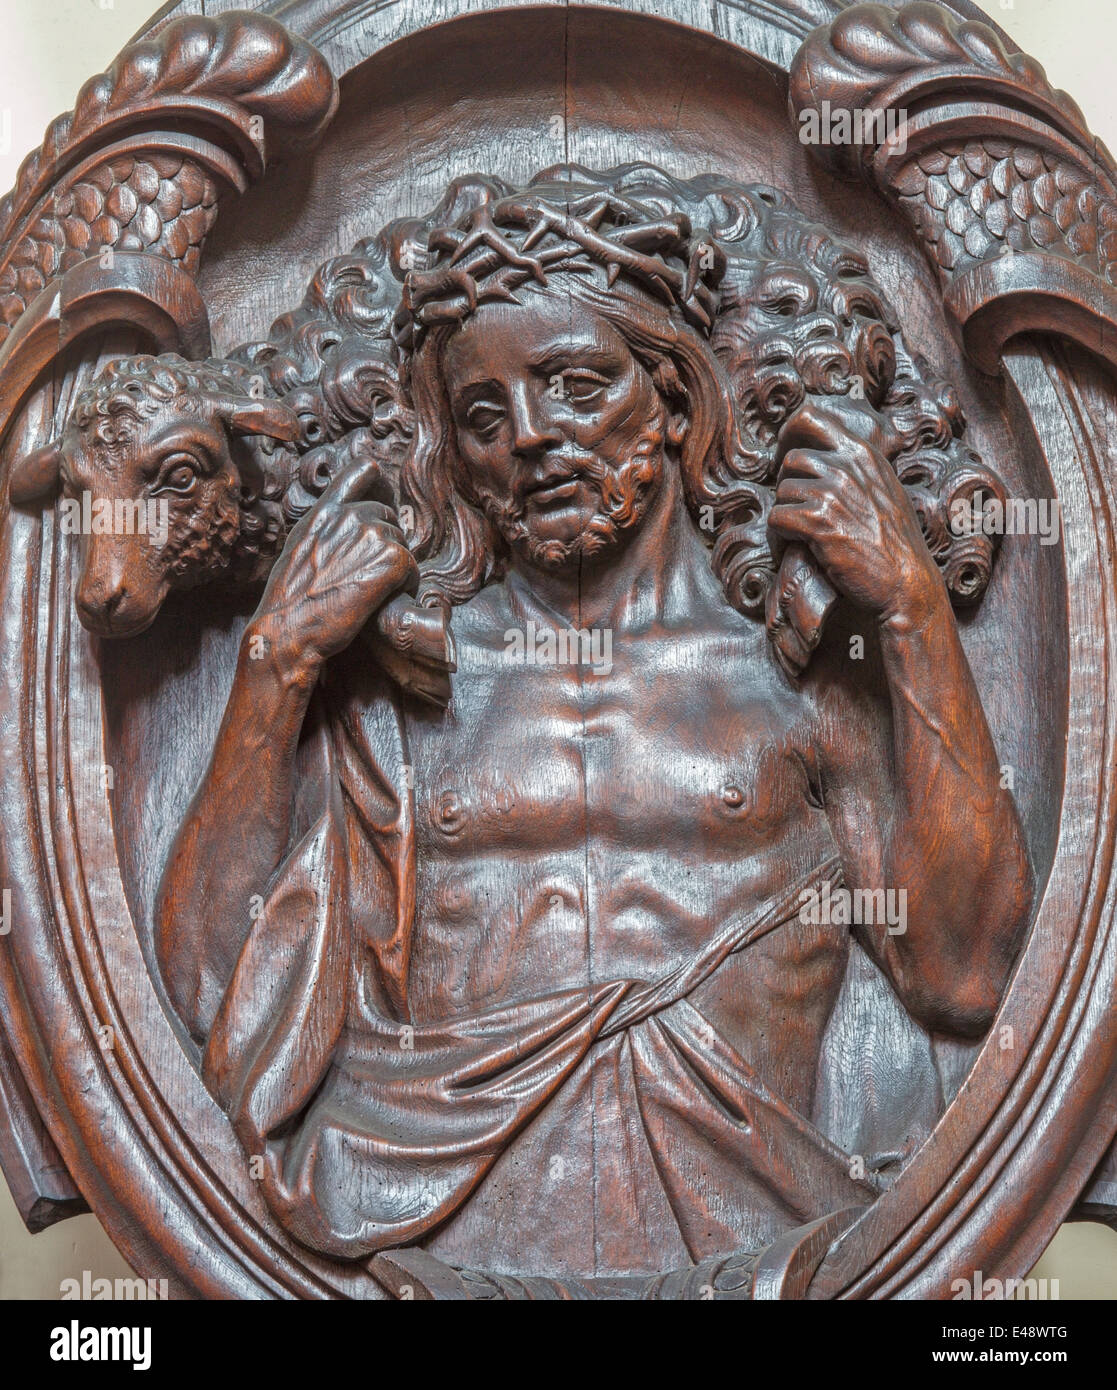 Bruges - the carved relief of Good shepherd on the confession box in Karmelietenkerk (Carmelites church) - Stock Image